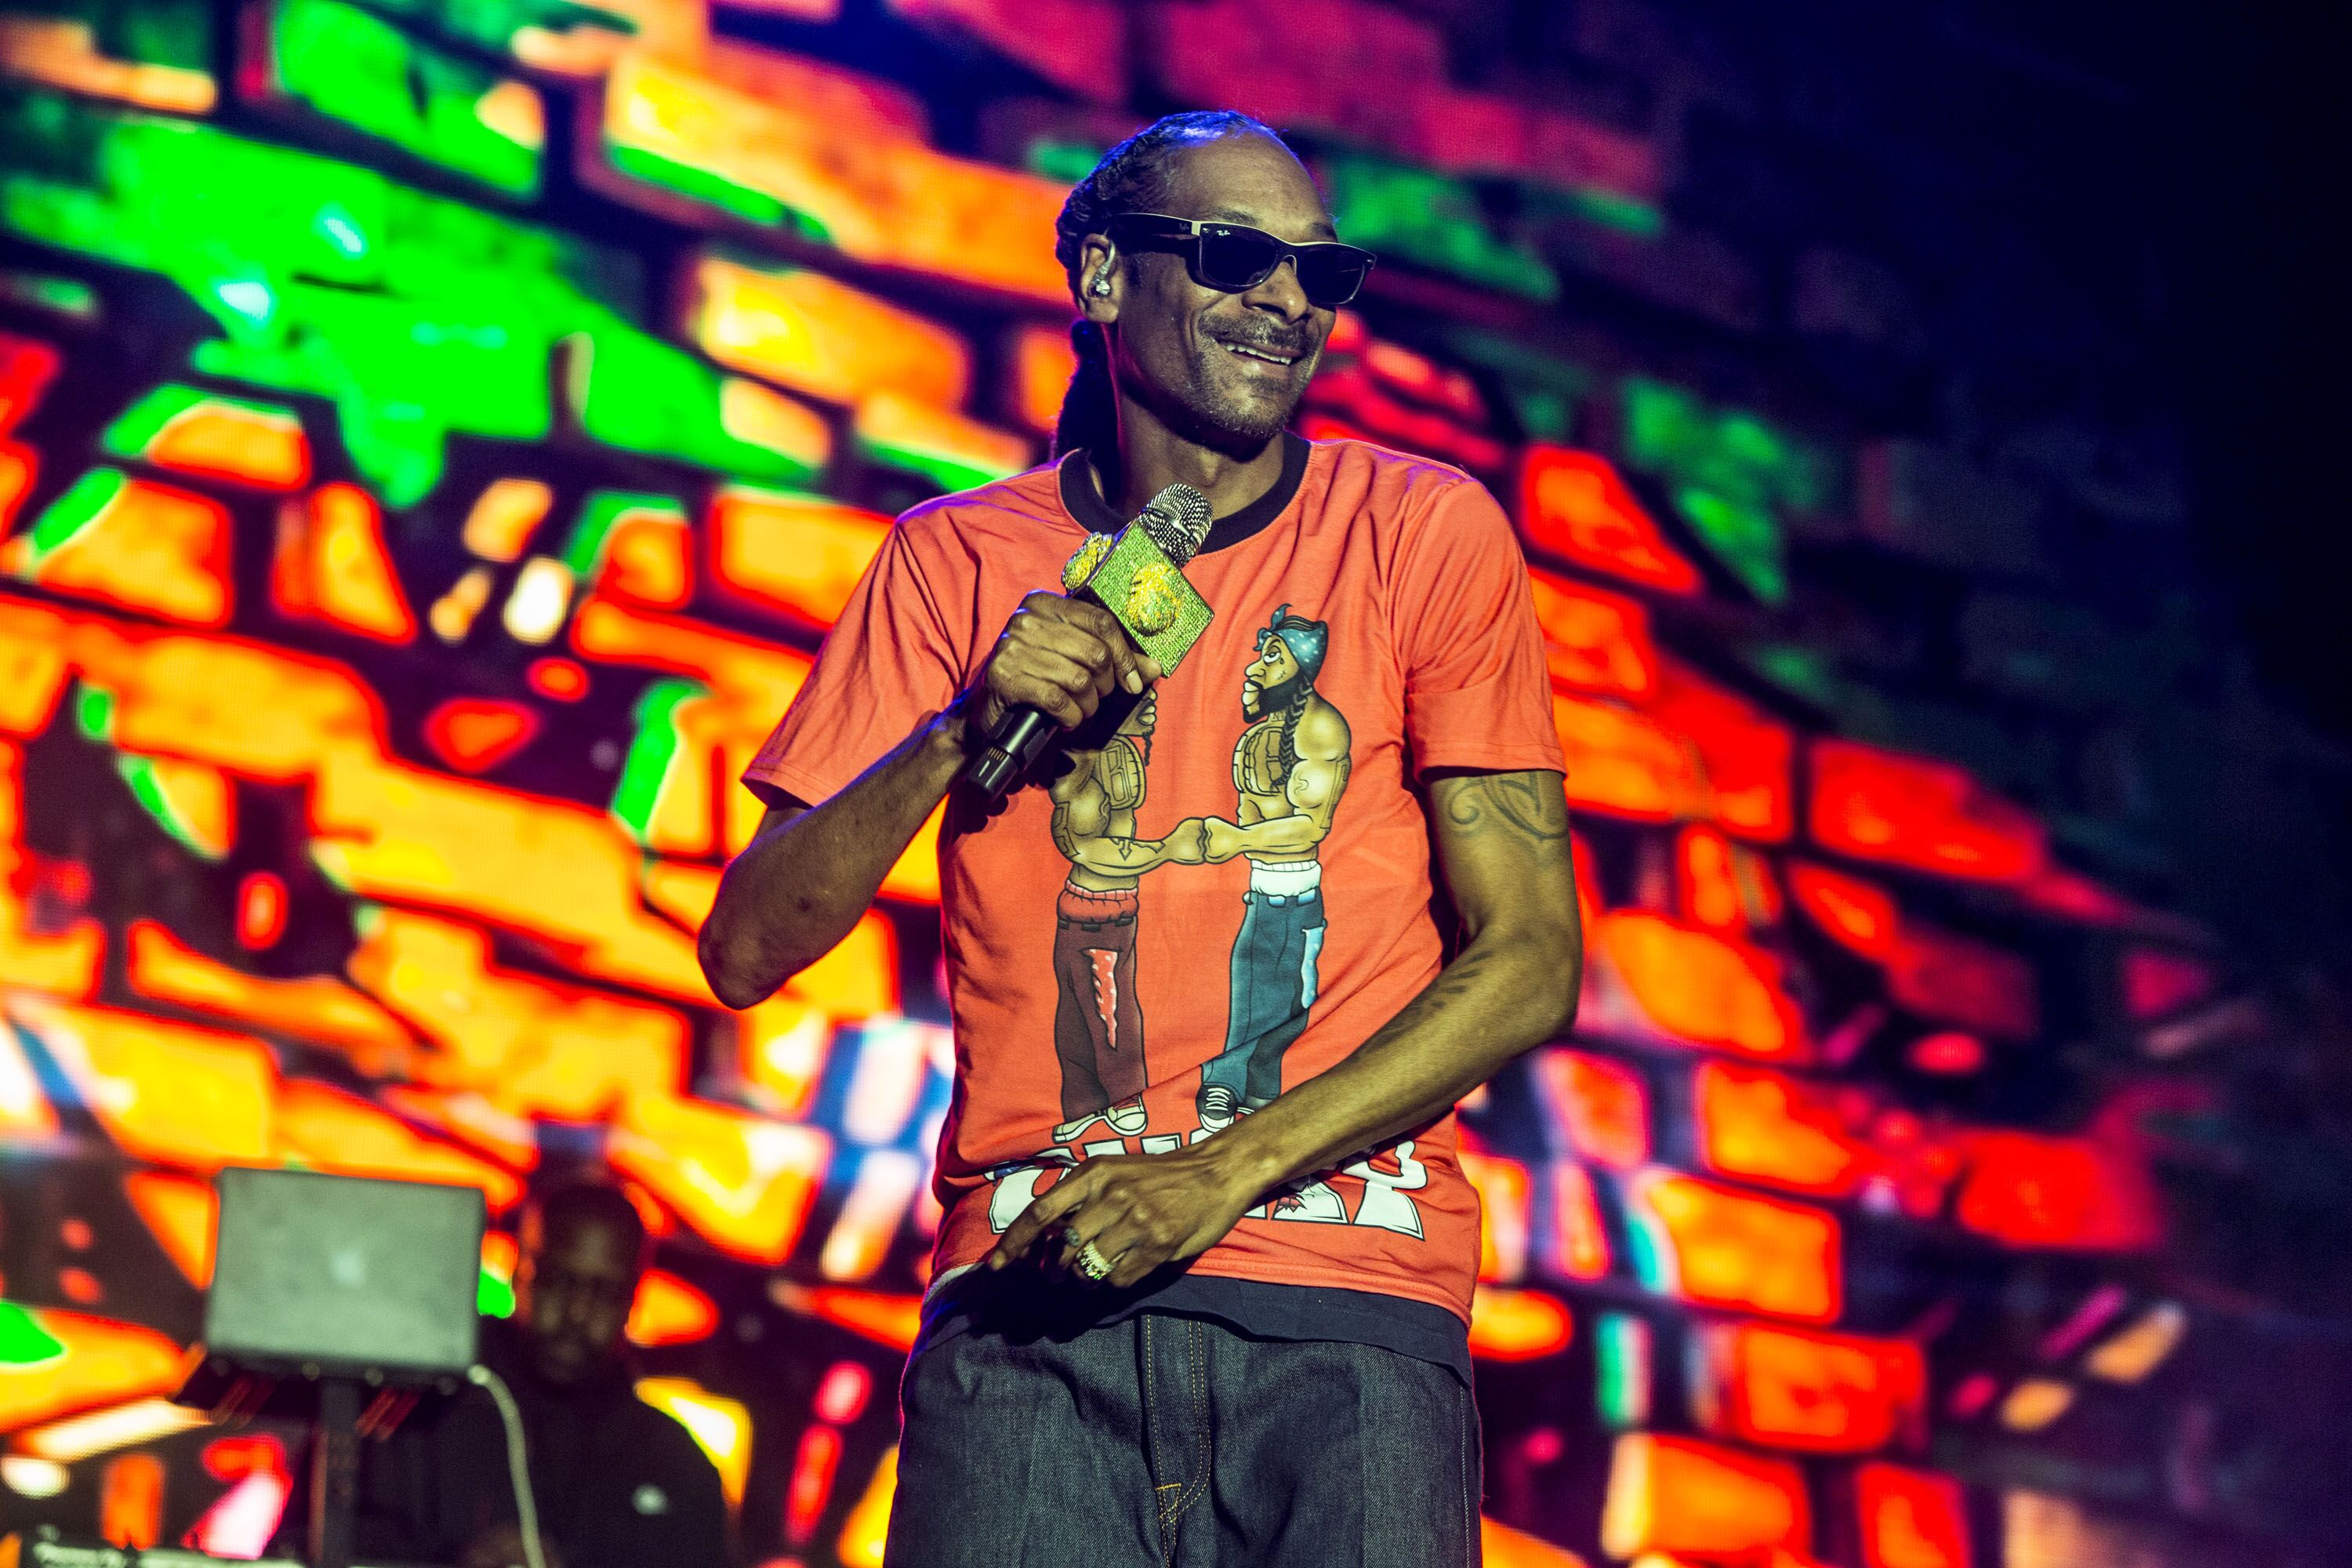 Snoop Dogg performs at 2019 KAABOO Del Mar at Del Mar Race Track on September 13, 2019 in Del Mar, California. | Source: Getty Images